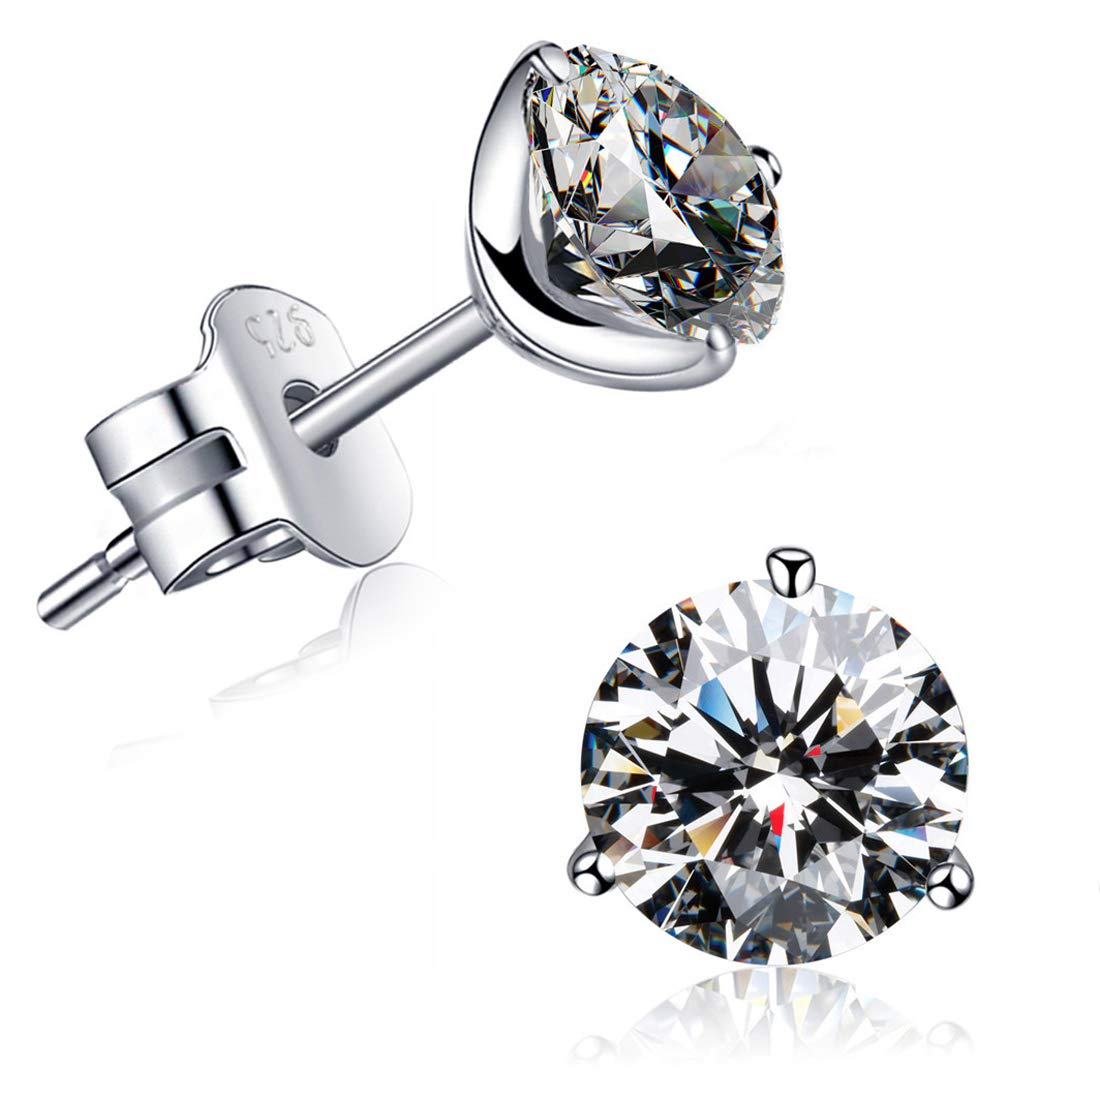 dcb78786b36e5 Best Rated in Men's Earrings & Helpful Customer Reviews - Amazon.com